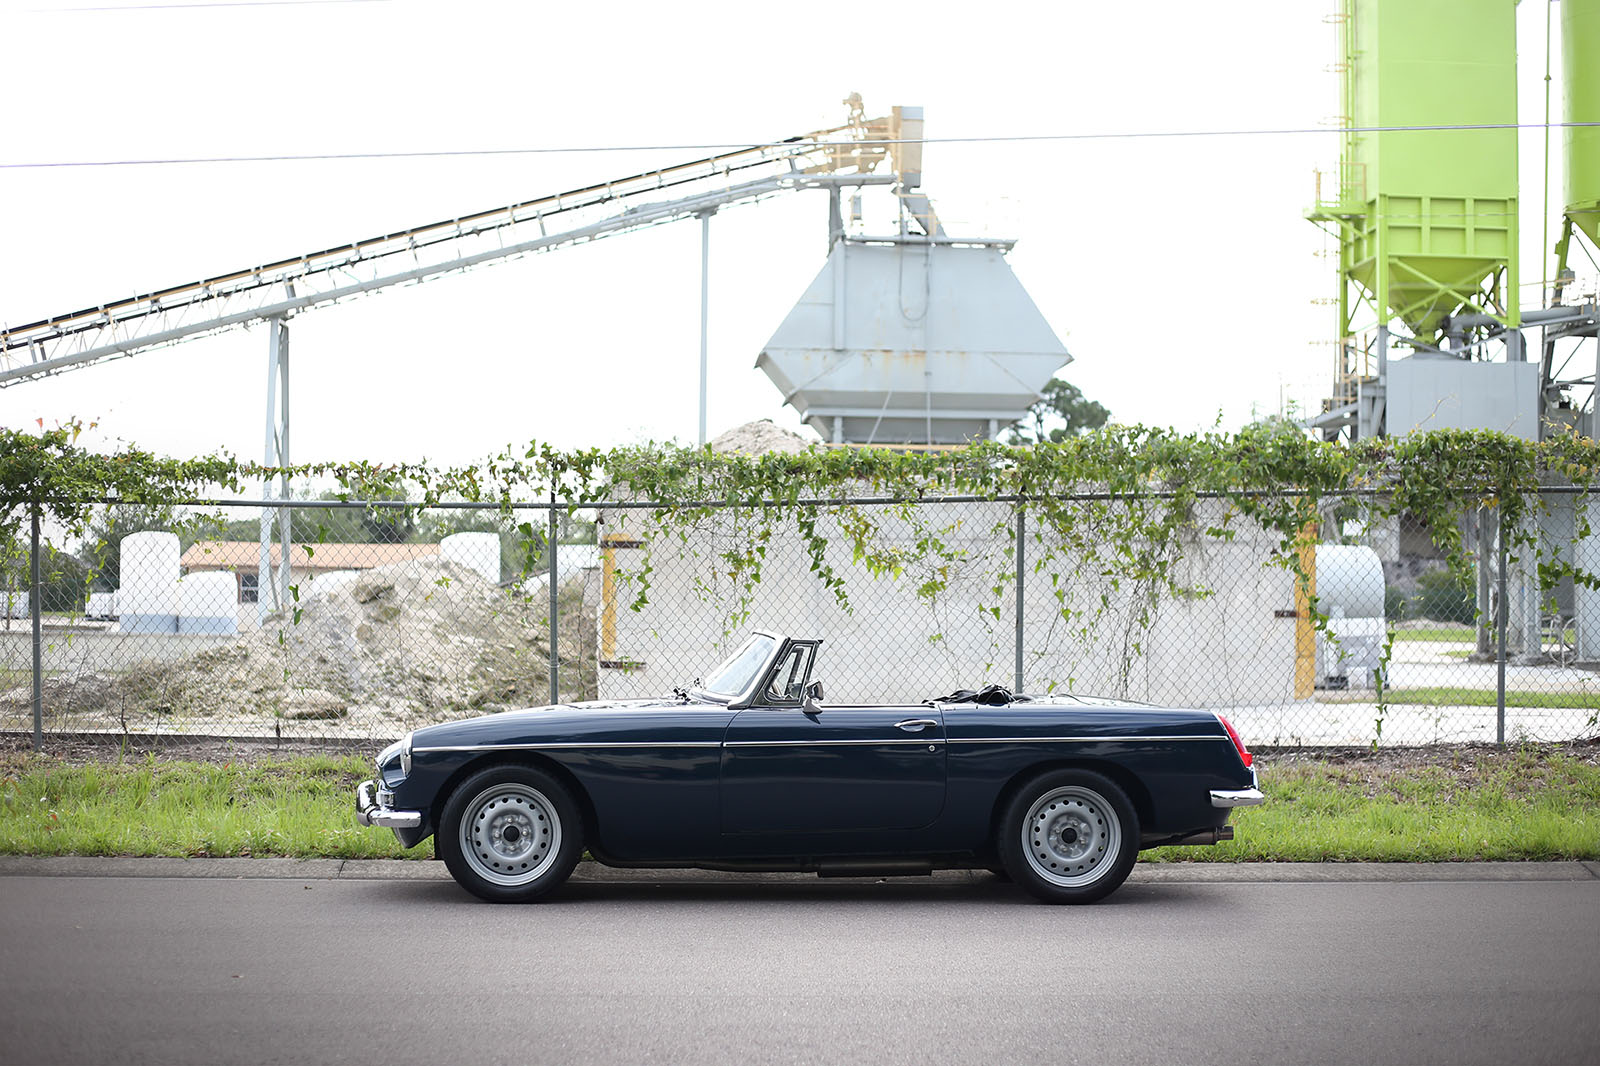 hight resolution of the project started when brian purchased a 1979 mgb roadster in 2012 on craigslist the roadster was in great condition having only two previous owners and